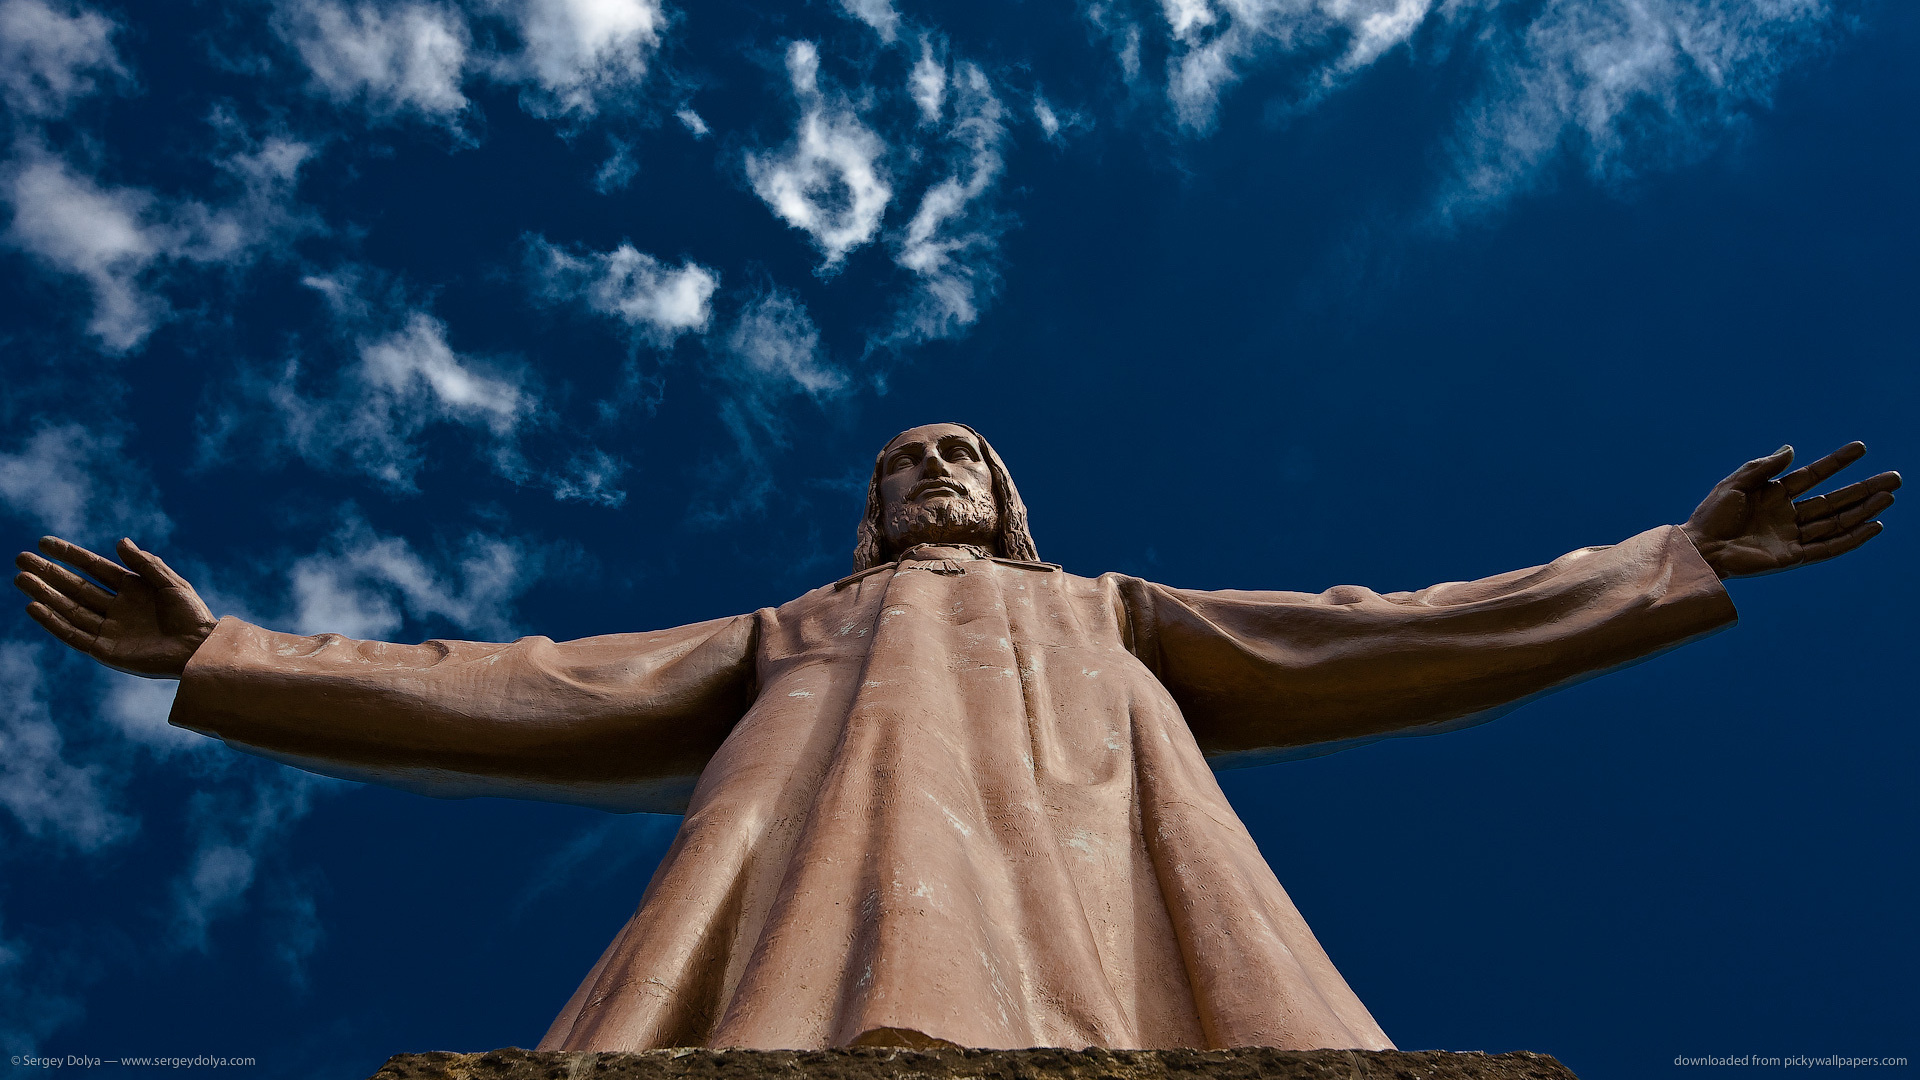 download hr hd wallpapers 1920 1080 jesus for computer backgrounds 1920x1080